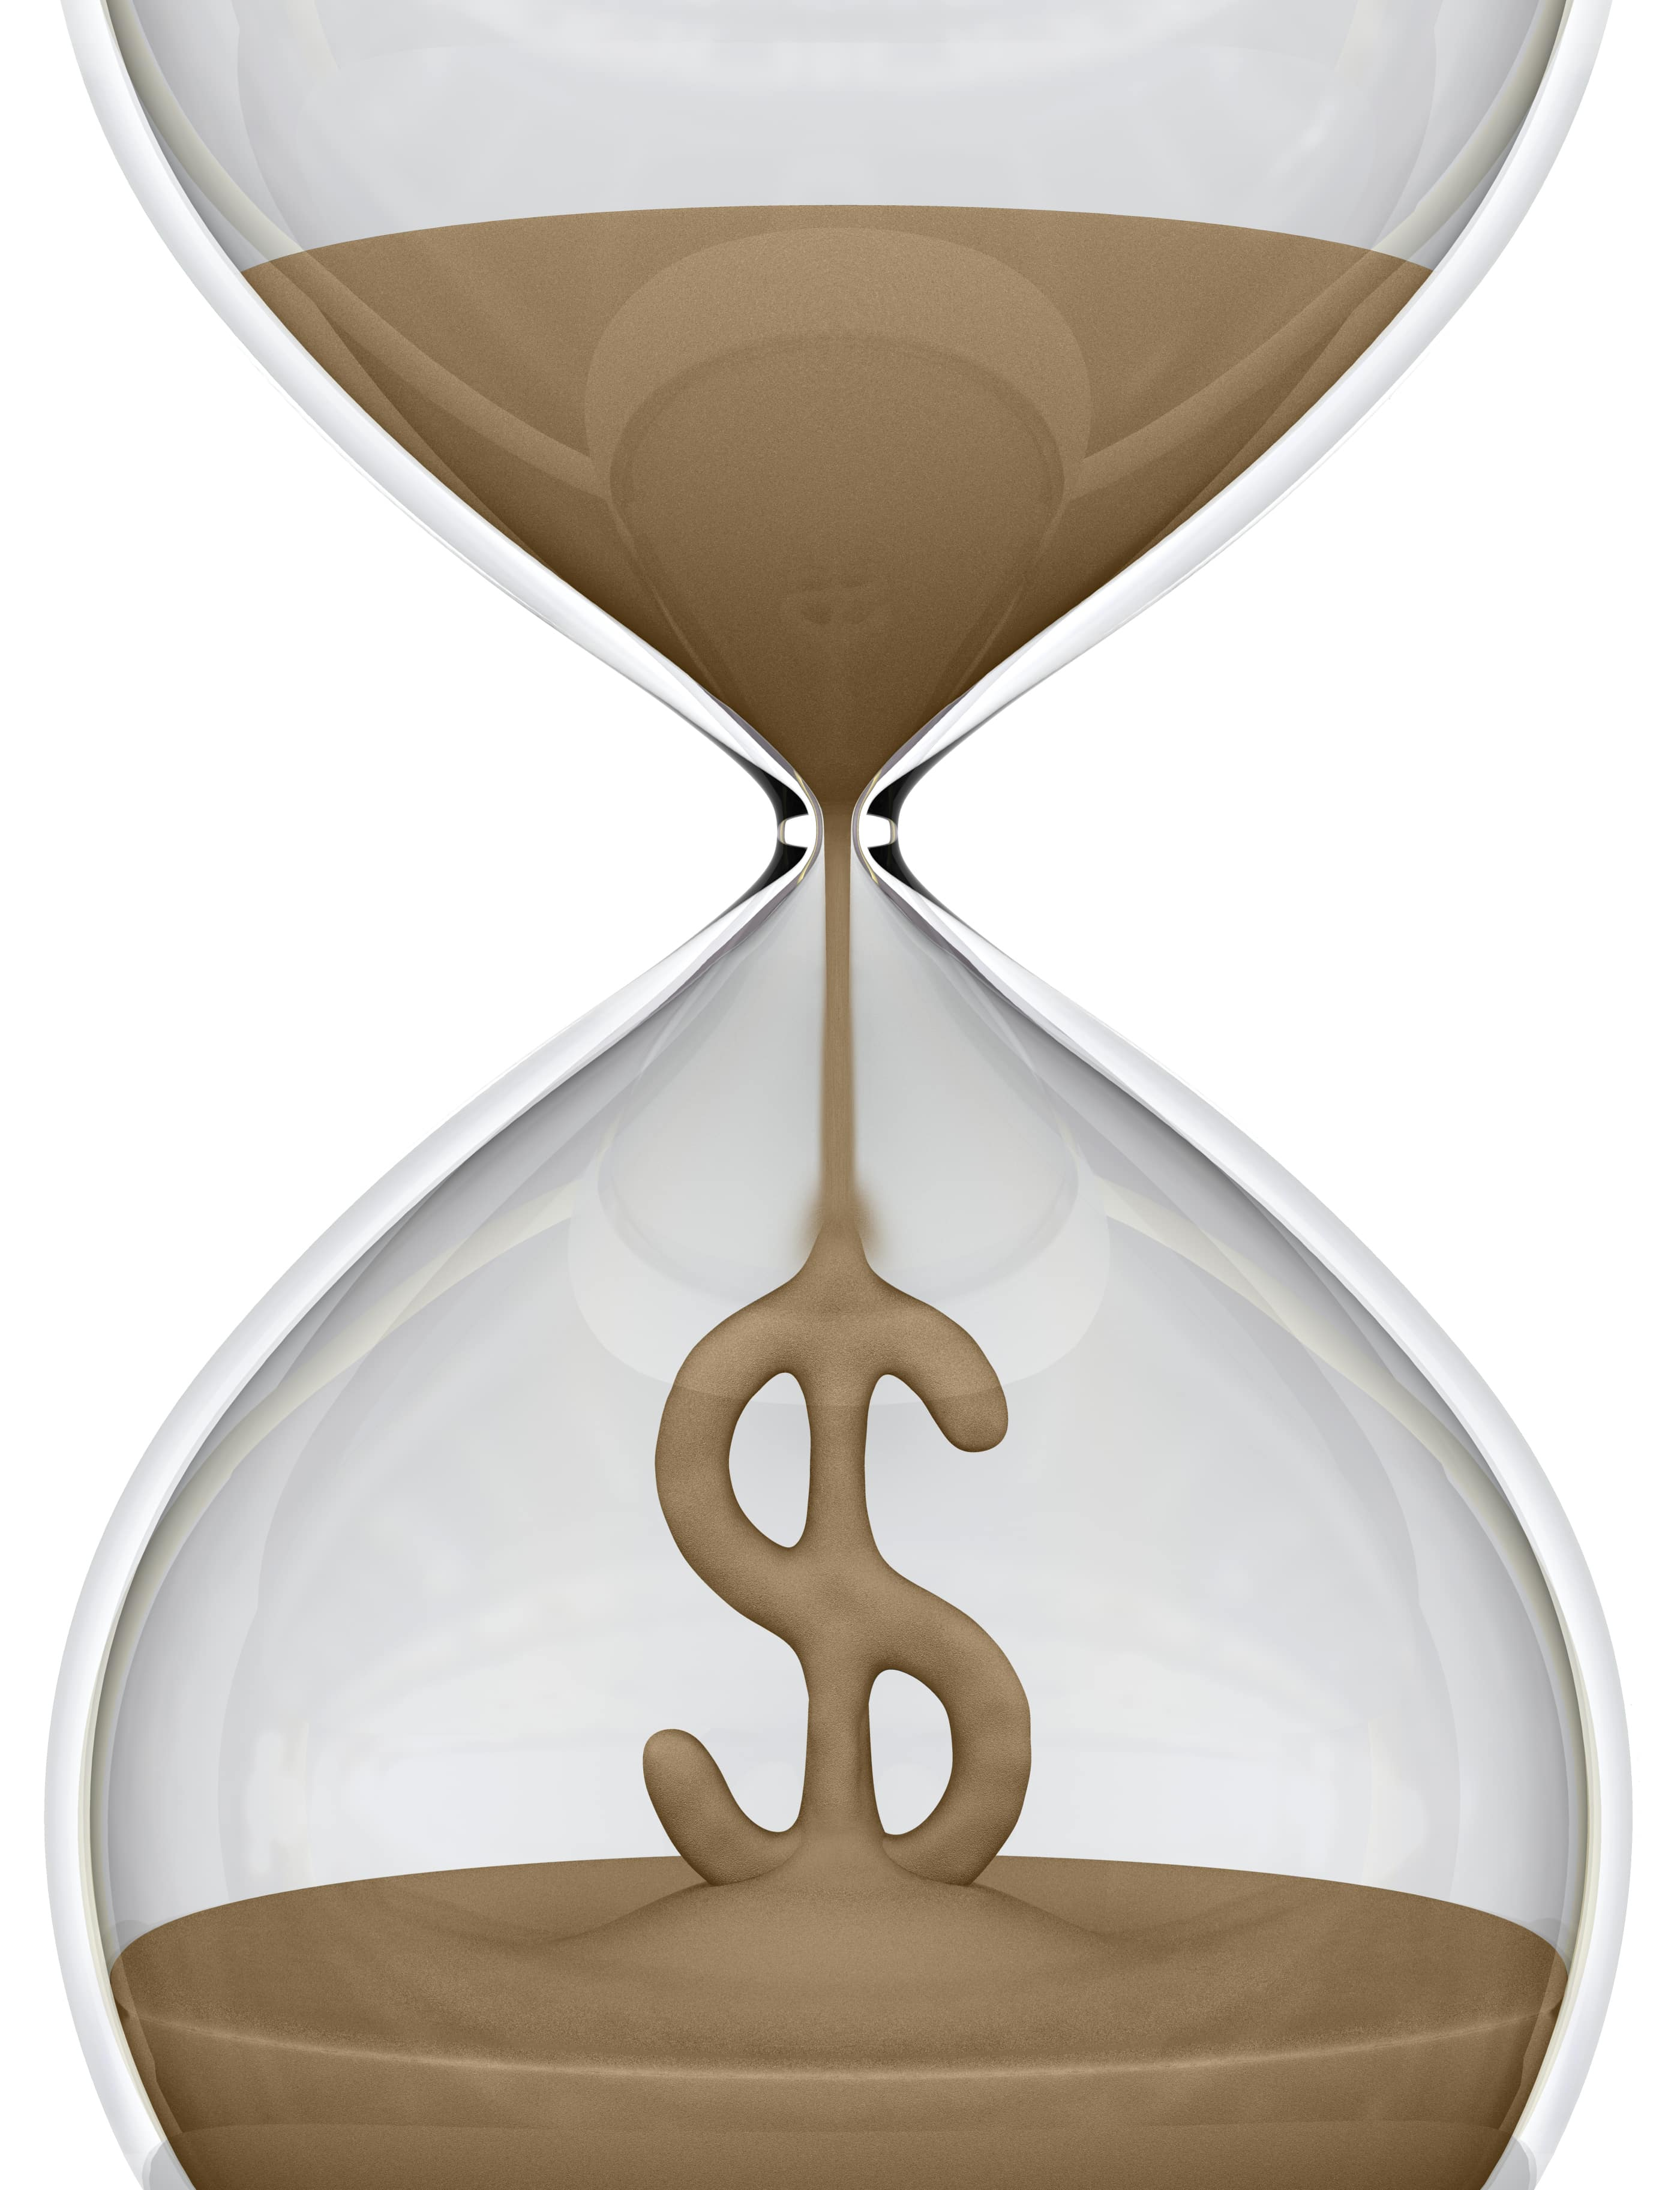 hourglass with money sign